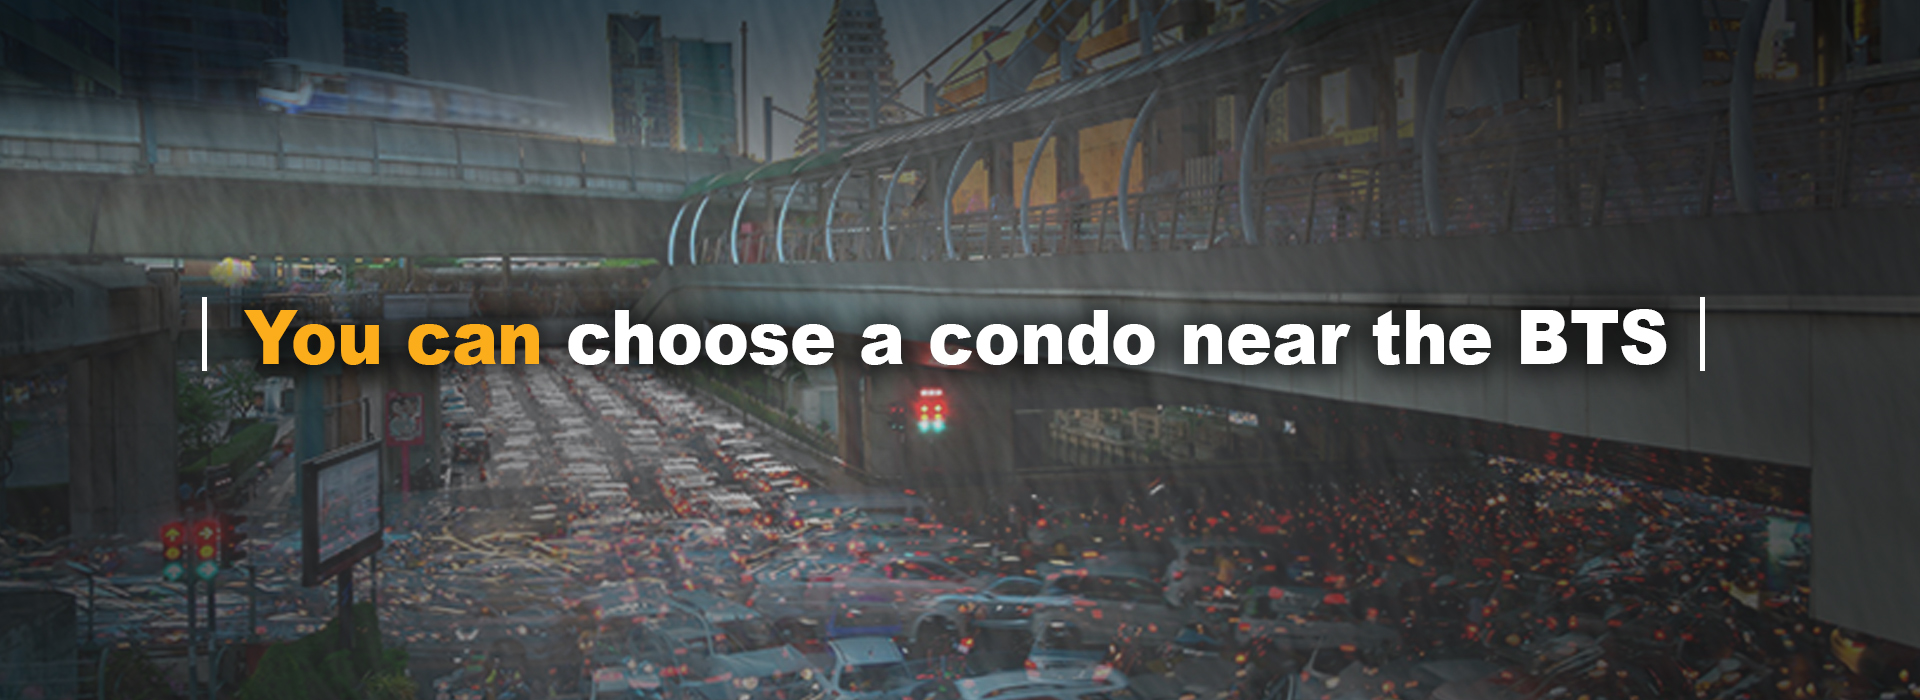 You can choose a condo near the BTS